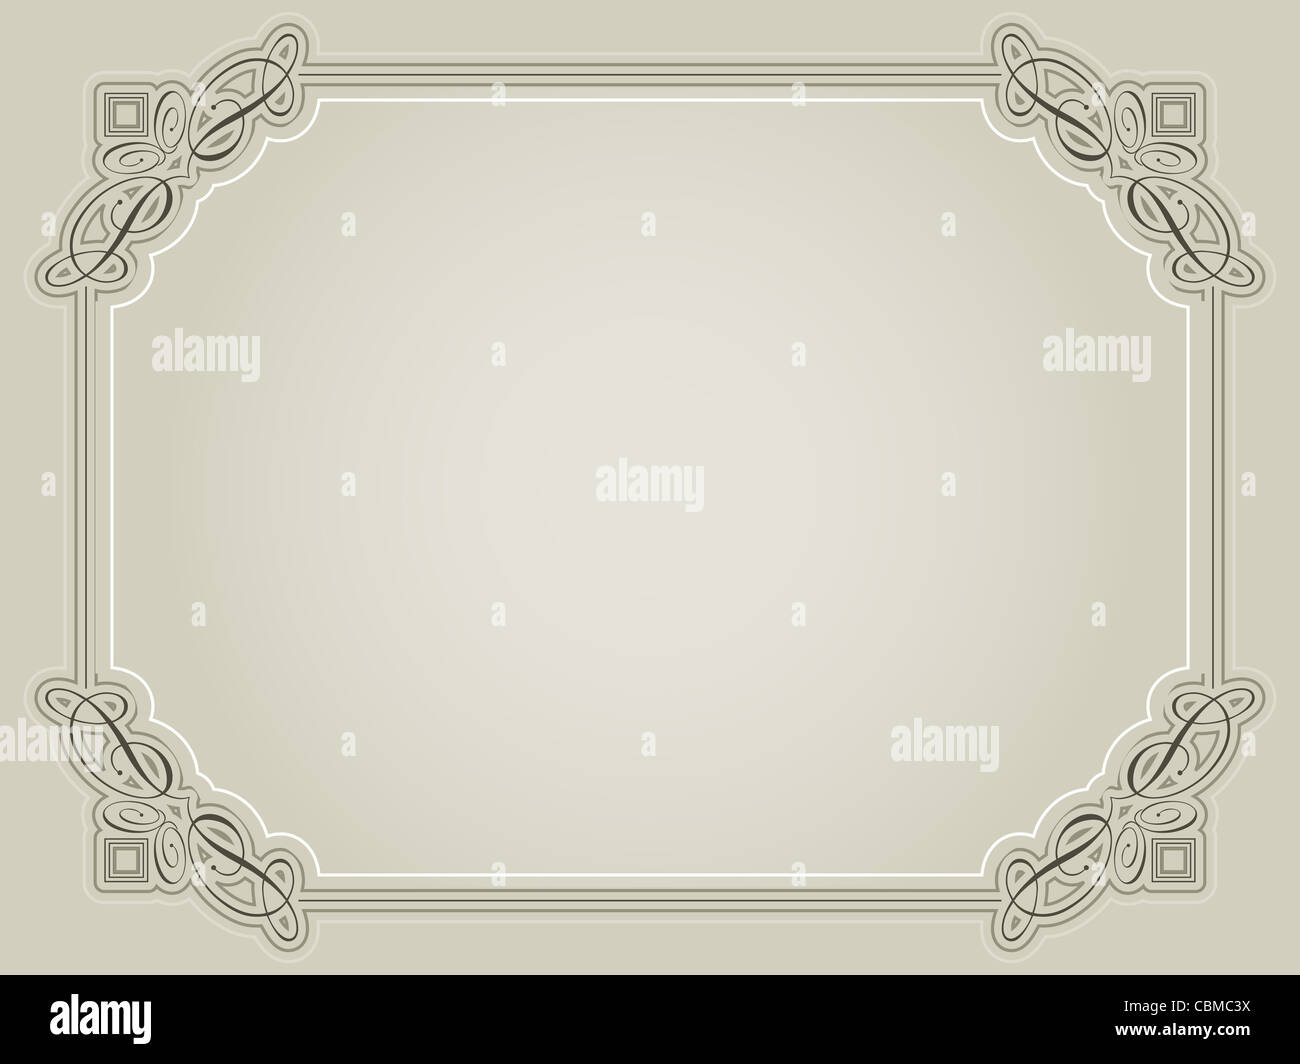 Very Decorative Certificate Stockfotos & Very Decorative Certificate ...